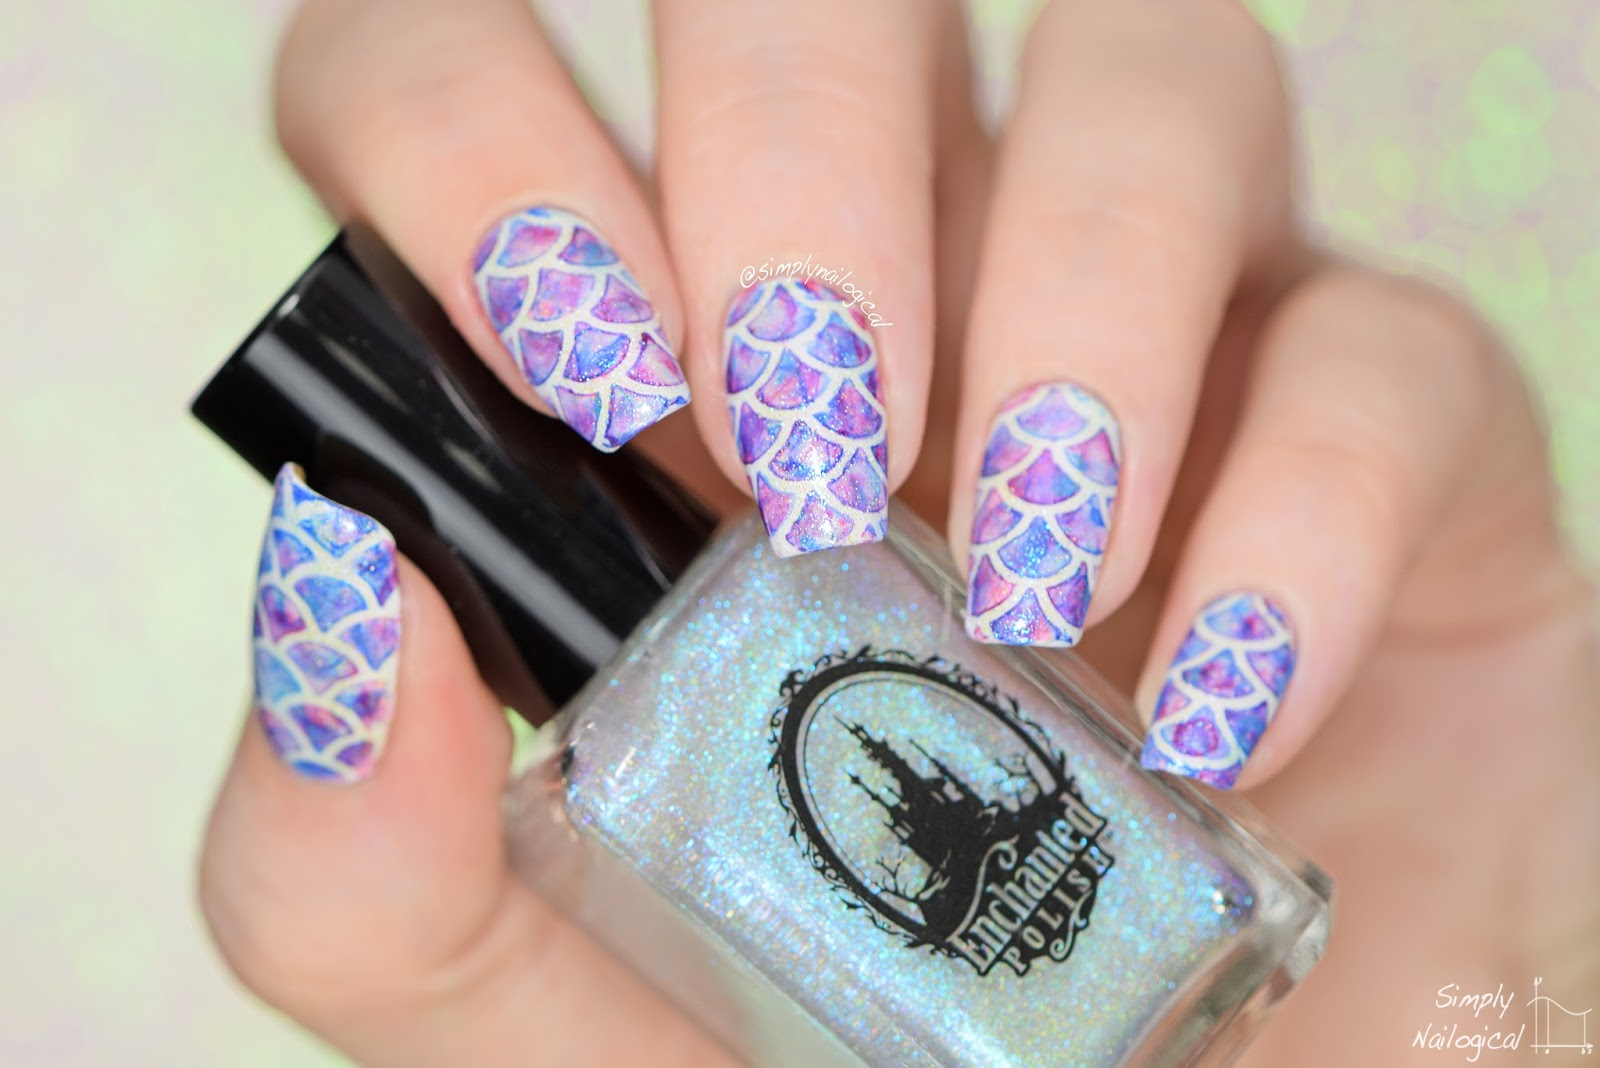 Simply Nailogical: Watercolour mermaid nails!